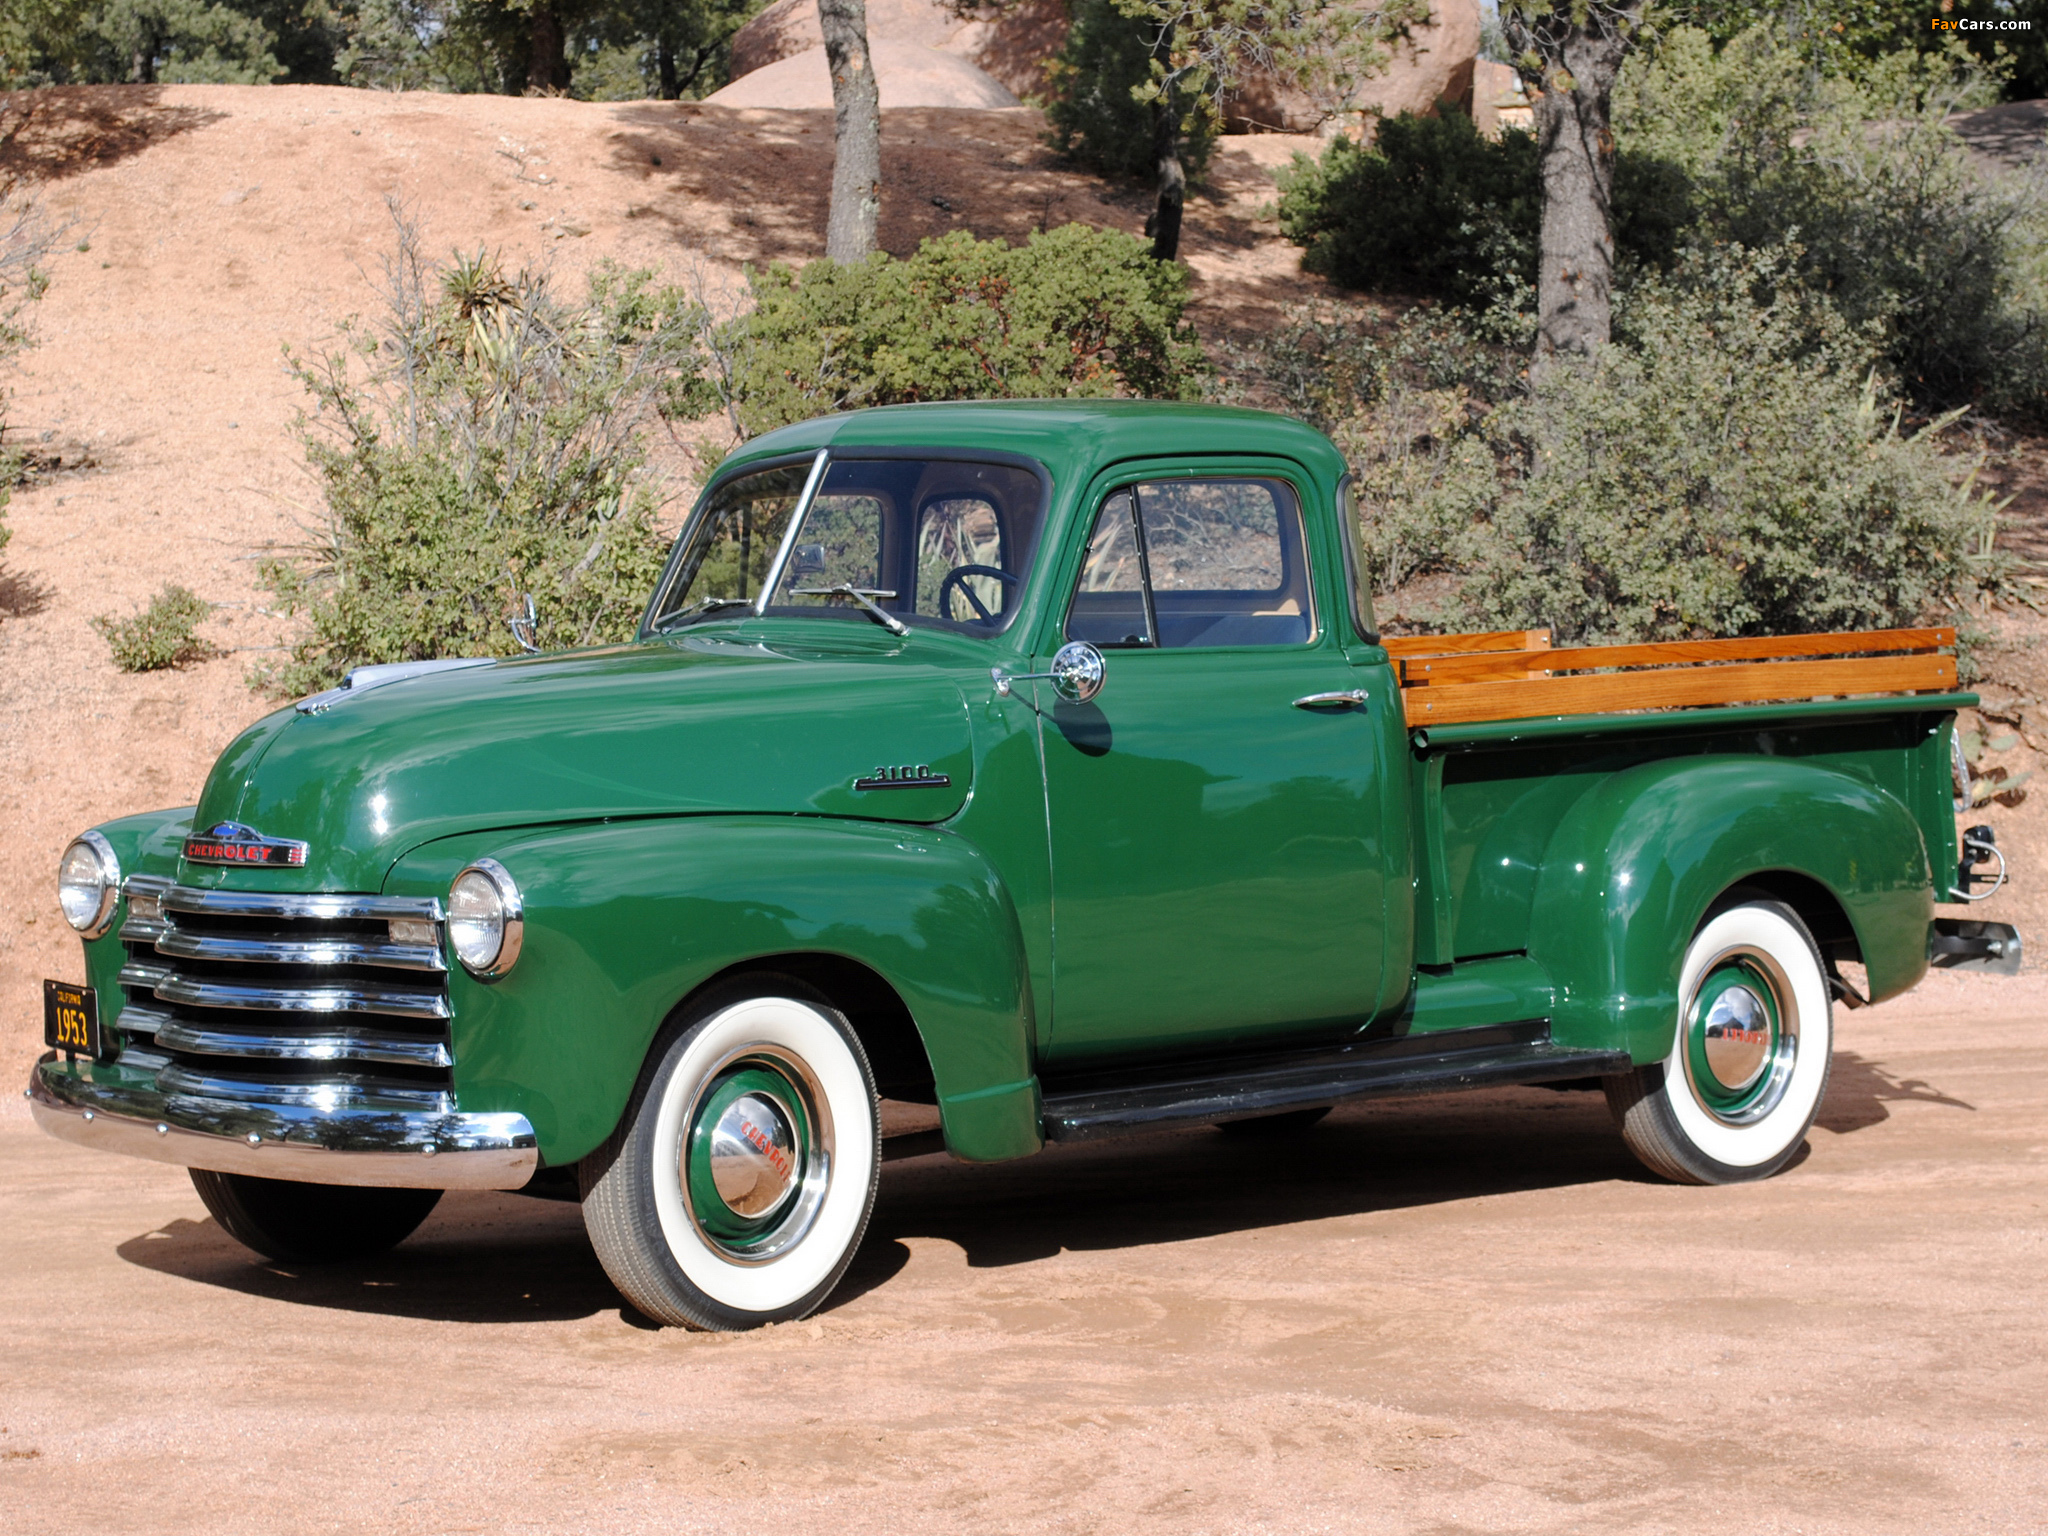 Chevrolet Chevy Pickup >> Chevrolet 3100 Pickup (H-3104) 1953 pictures (2048x1536)